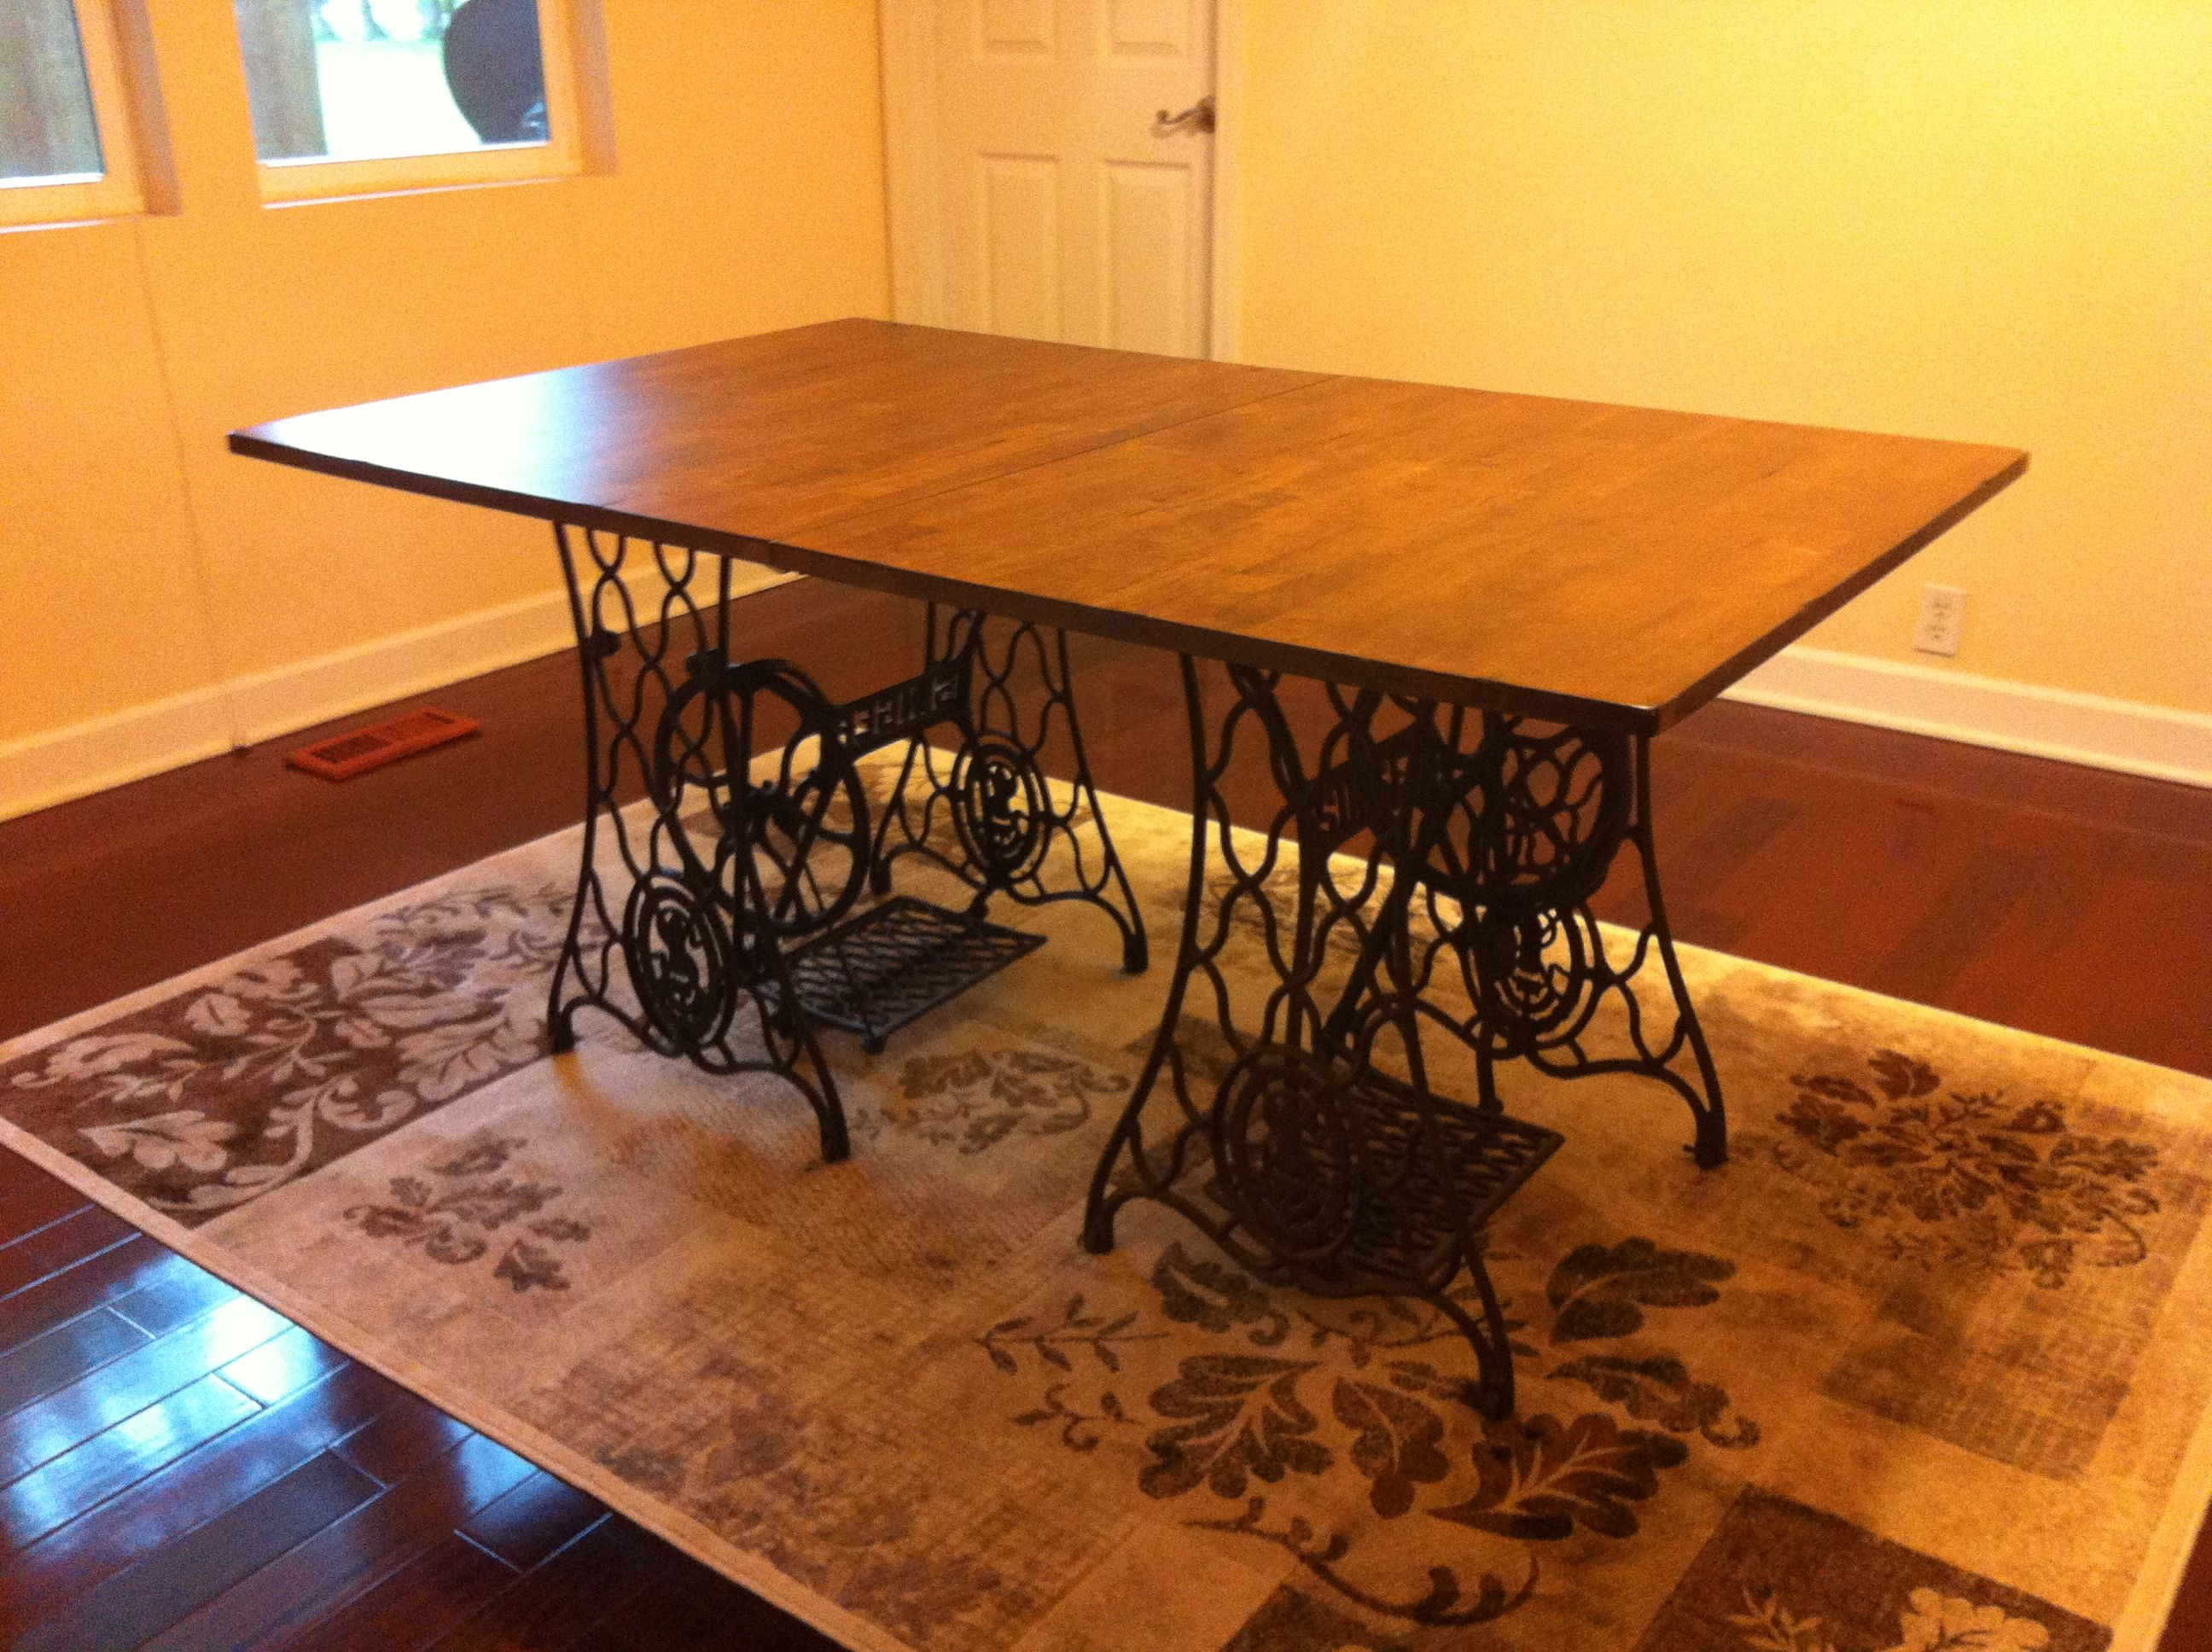 Bought The Table Top For $30 At A Furniture Store. My Mom Had One Singer  Sewing Machine Leg And Bought The Other One For $40!! Made A Kitchen Table  For $70 ...